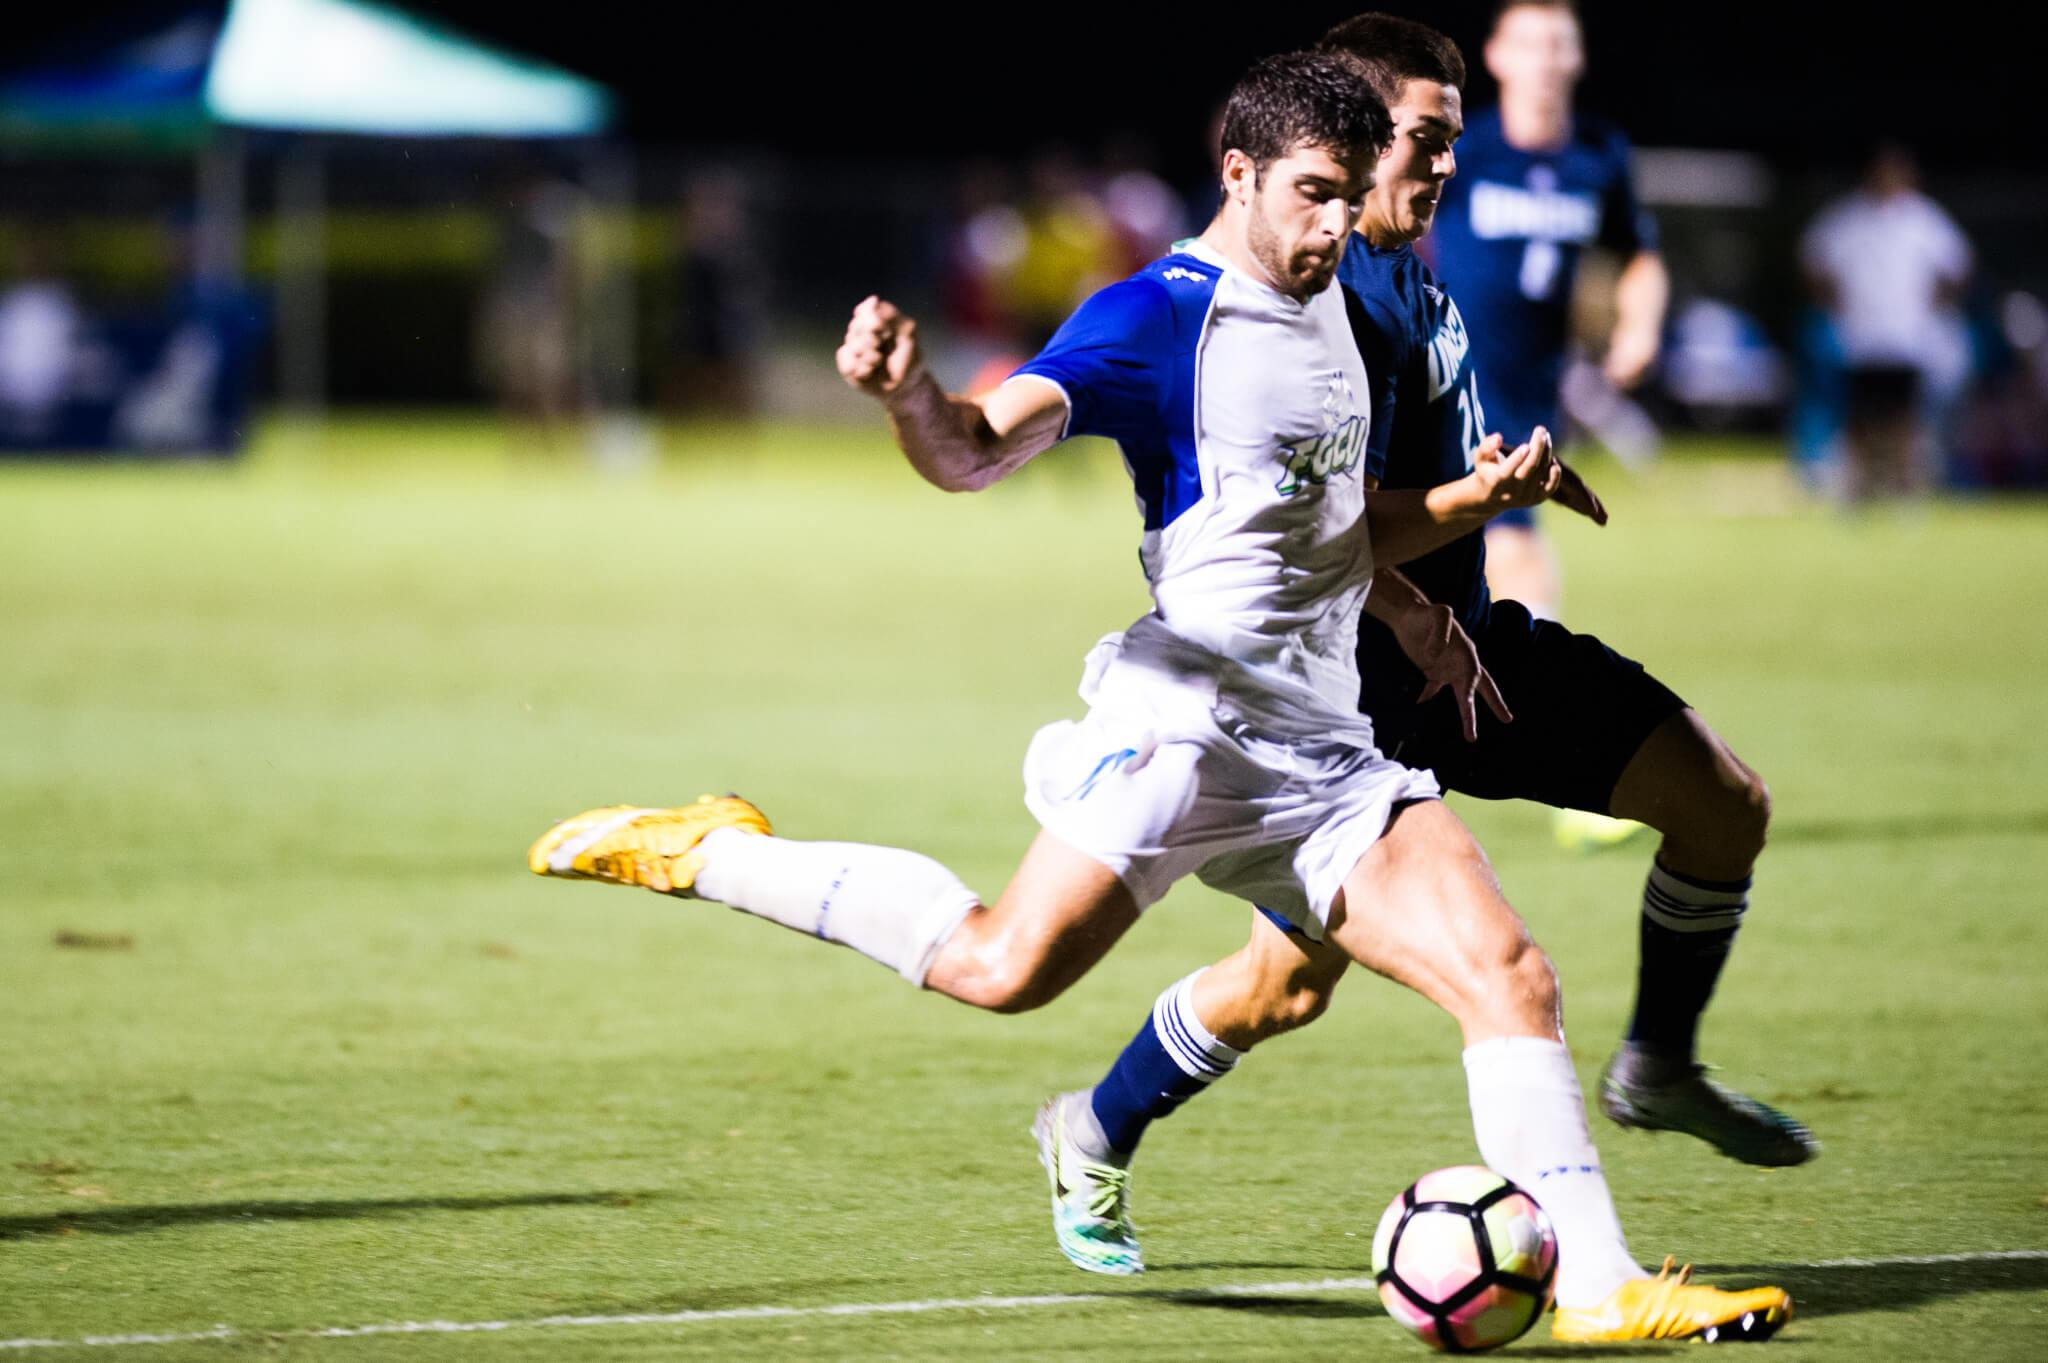 FGCU defeats UNCW 5-0 to extend win streak to four